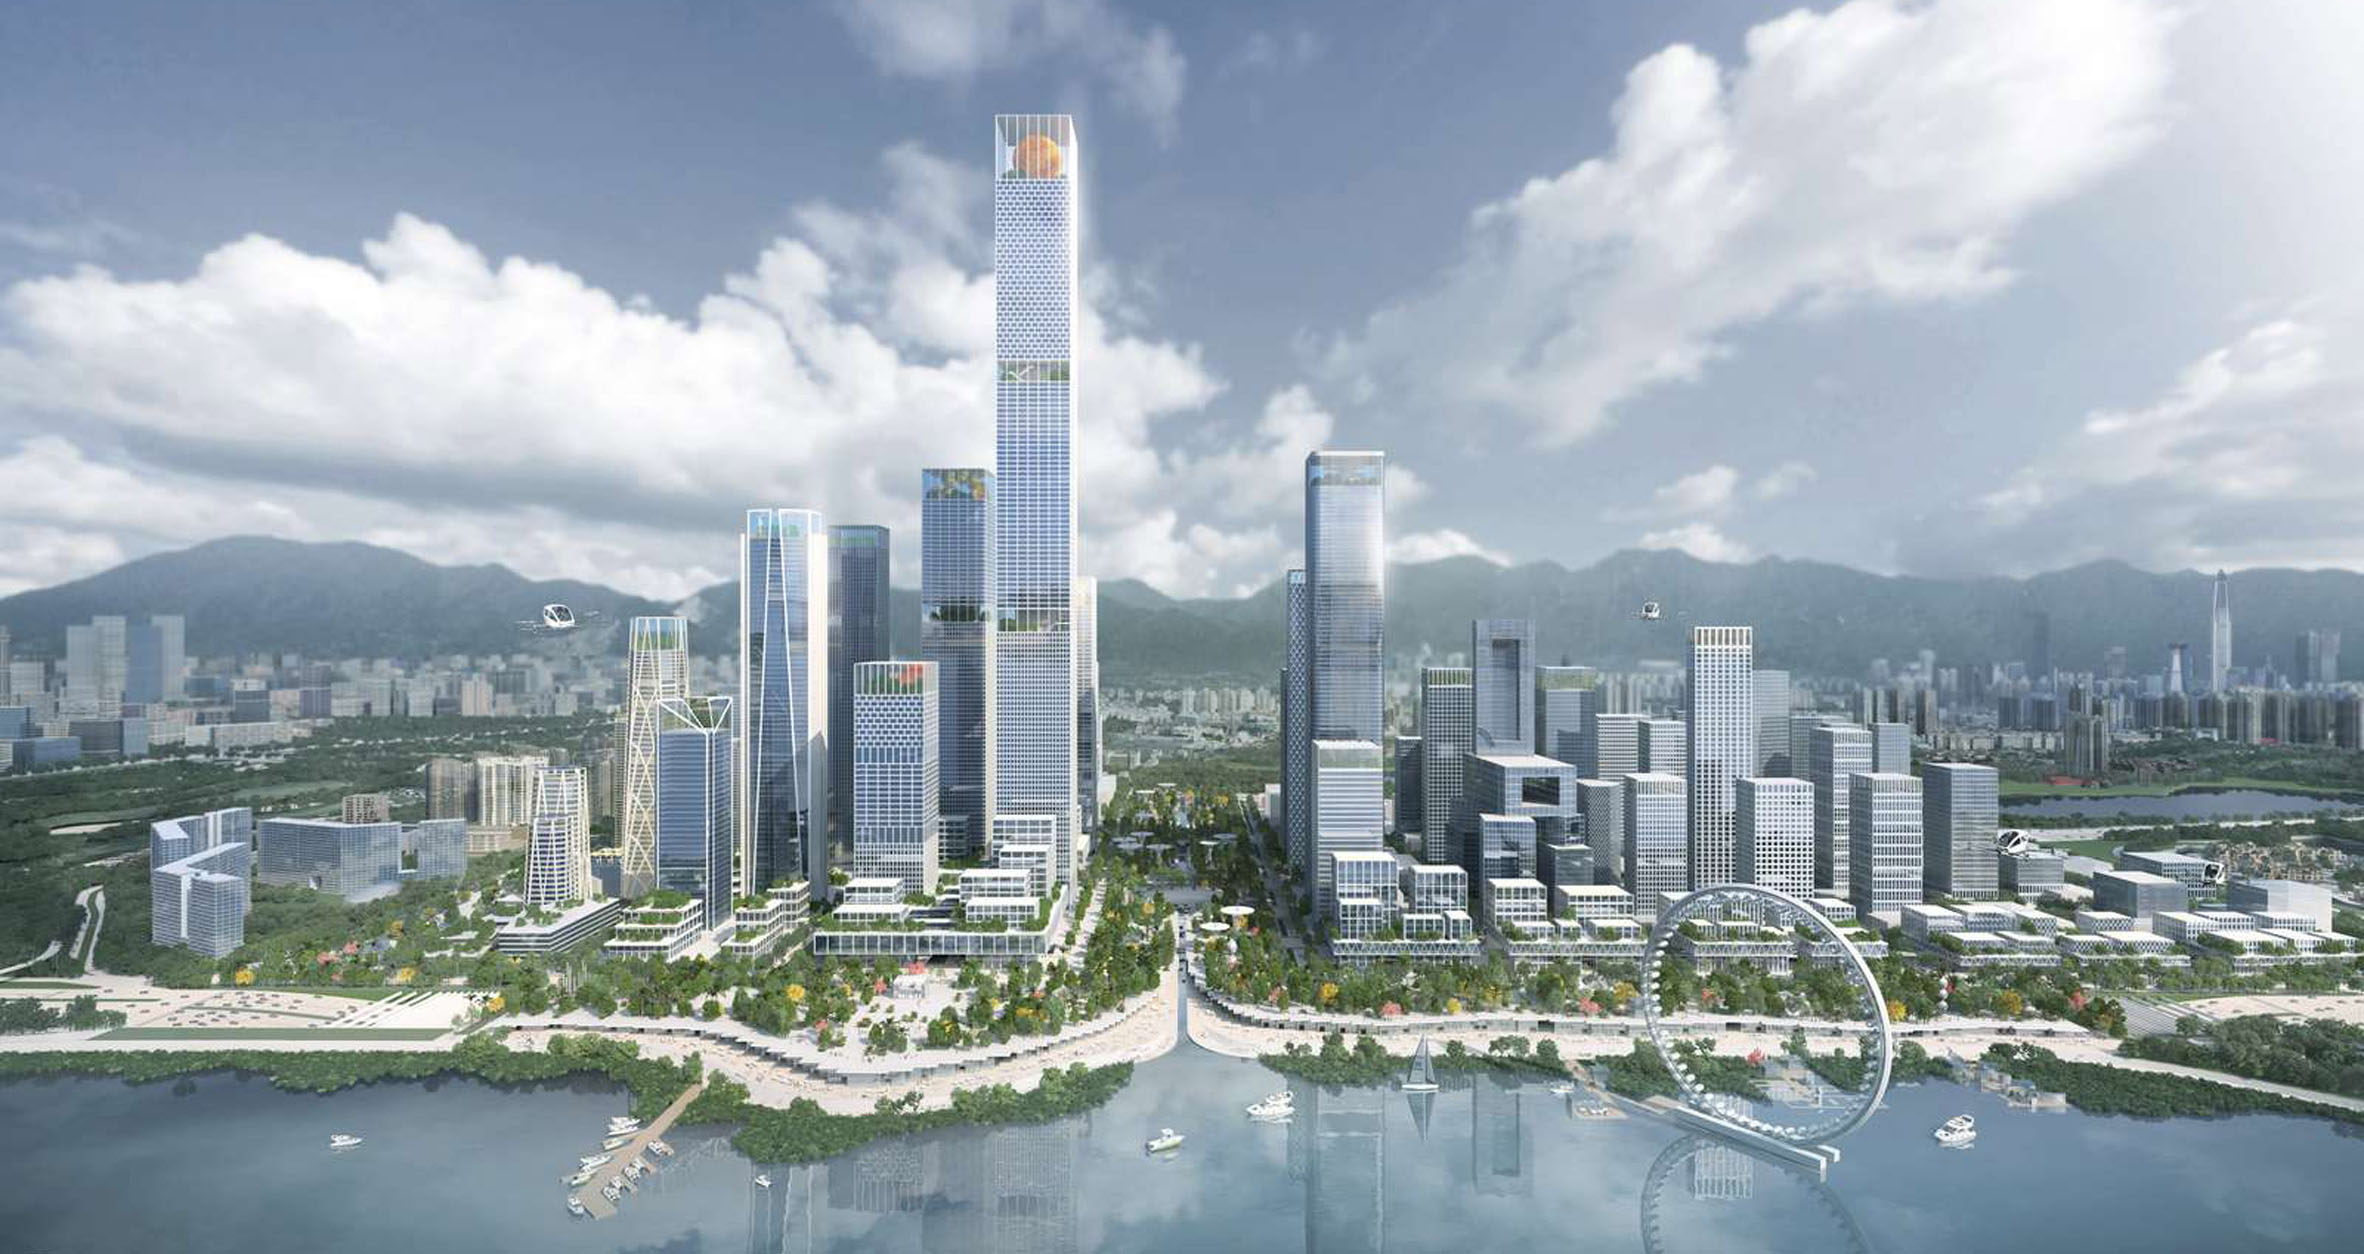 (c) Henning Larsen. A proposal for a 5.1-kilometer-city center in Shenzhen calls for cultural and commercial institutions near the seashore.